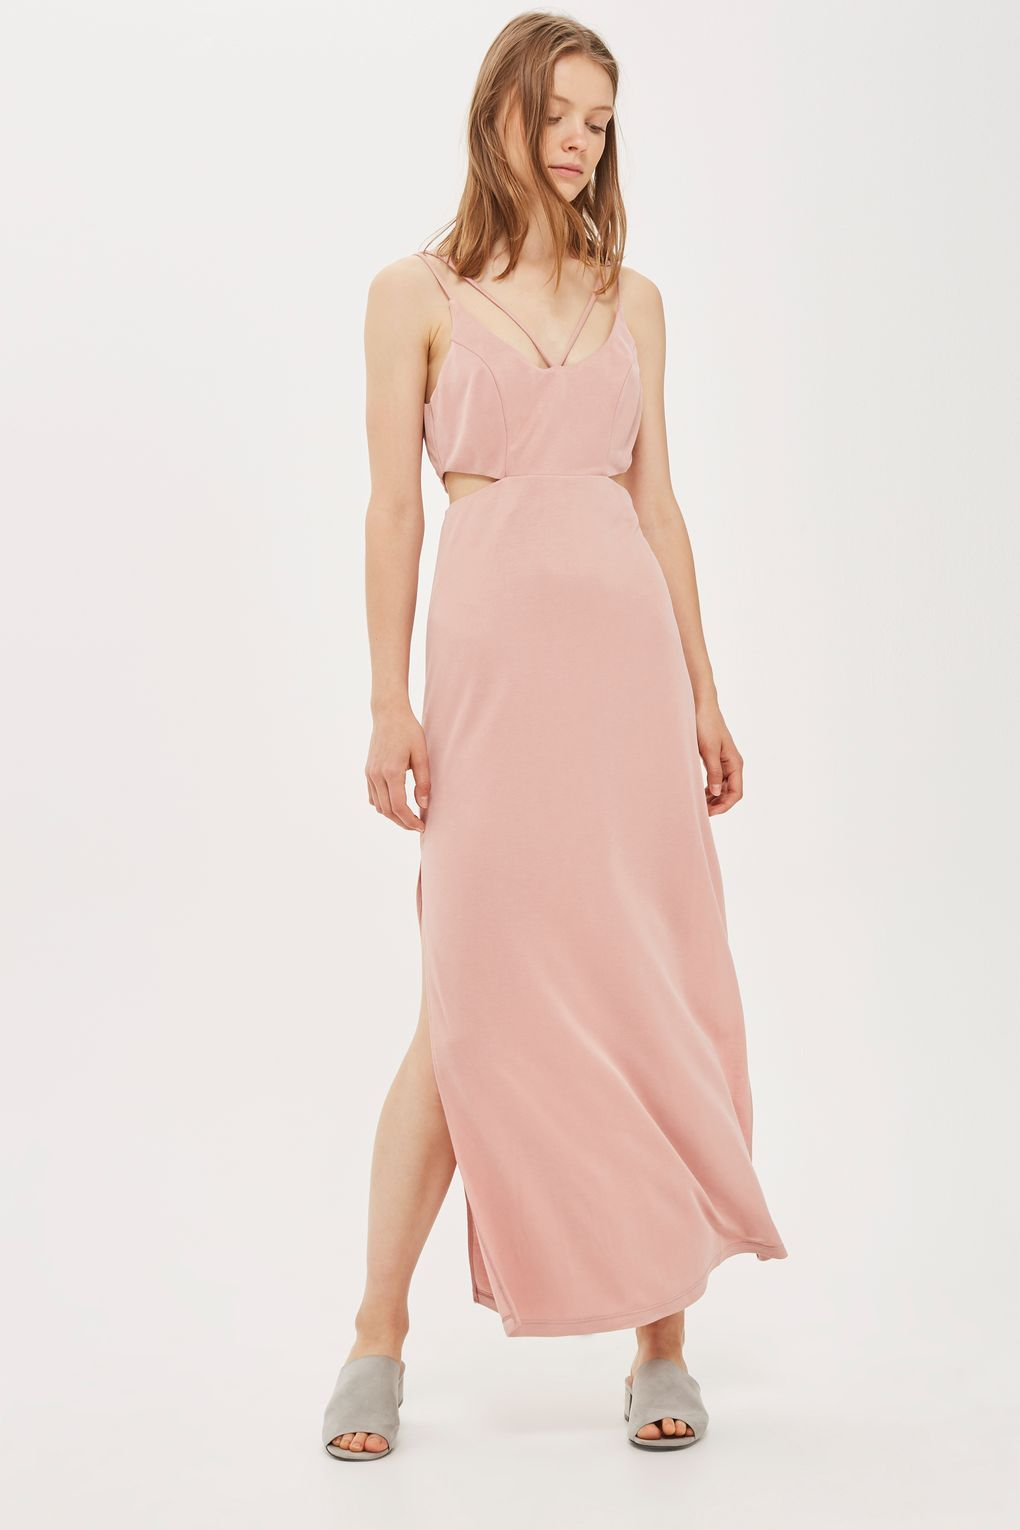 Pink slip dress outfit  Midi Maxi Dresses  Clothing  TopShop  thatud be neat  Pinterest